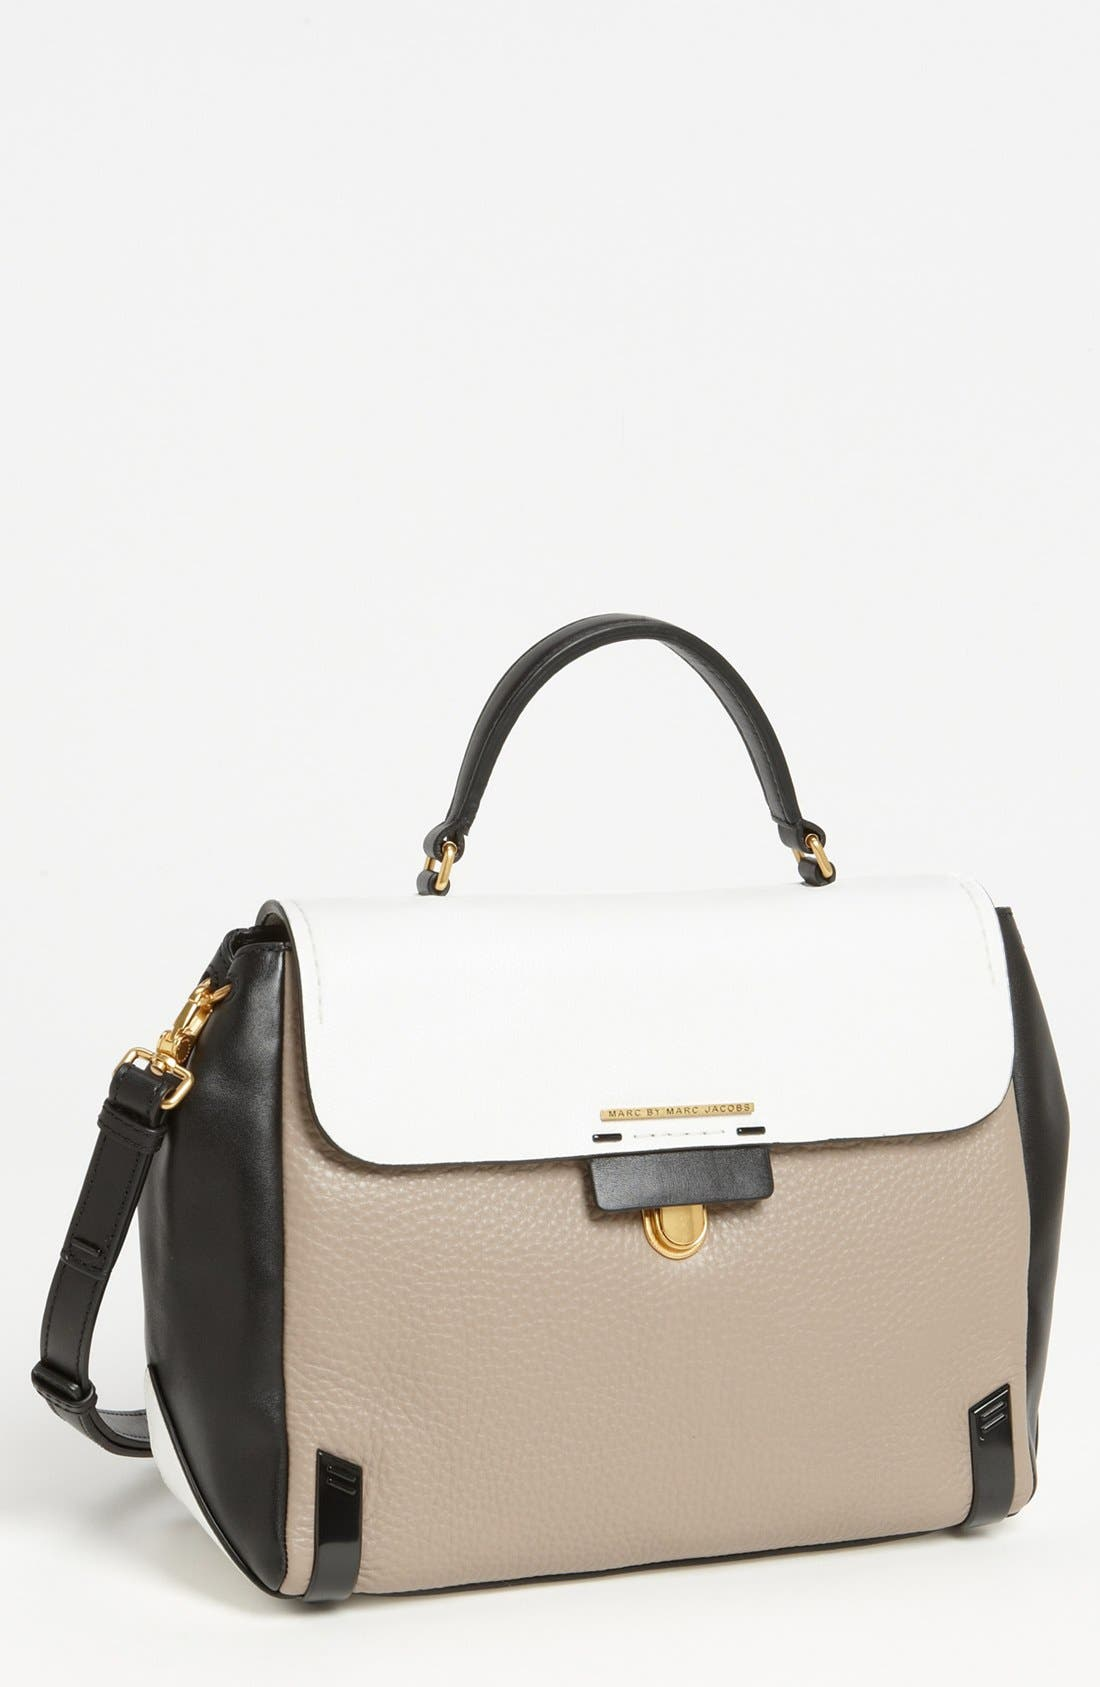 MARC JACOBS MARC BY MARC JACOBS 'Sheltered Island' Colorblock Leather Satchel, Medium, Main, color, 250